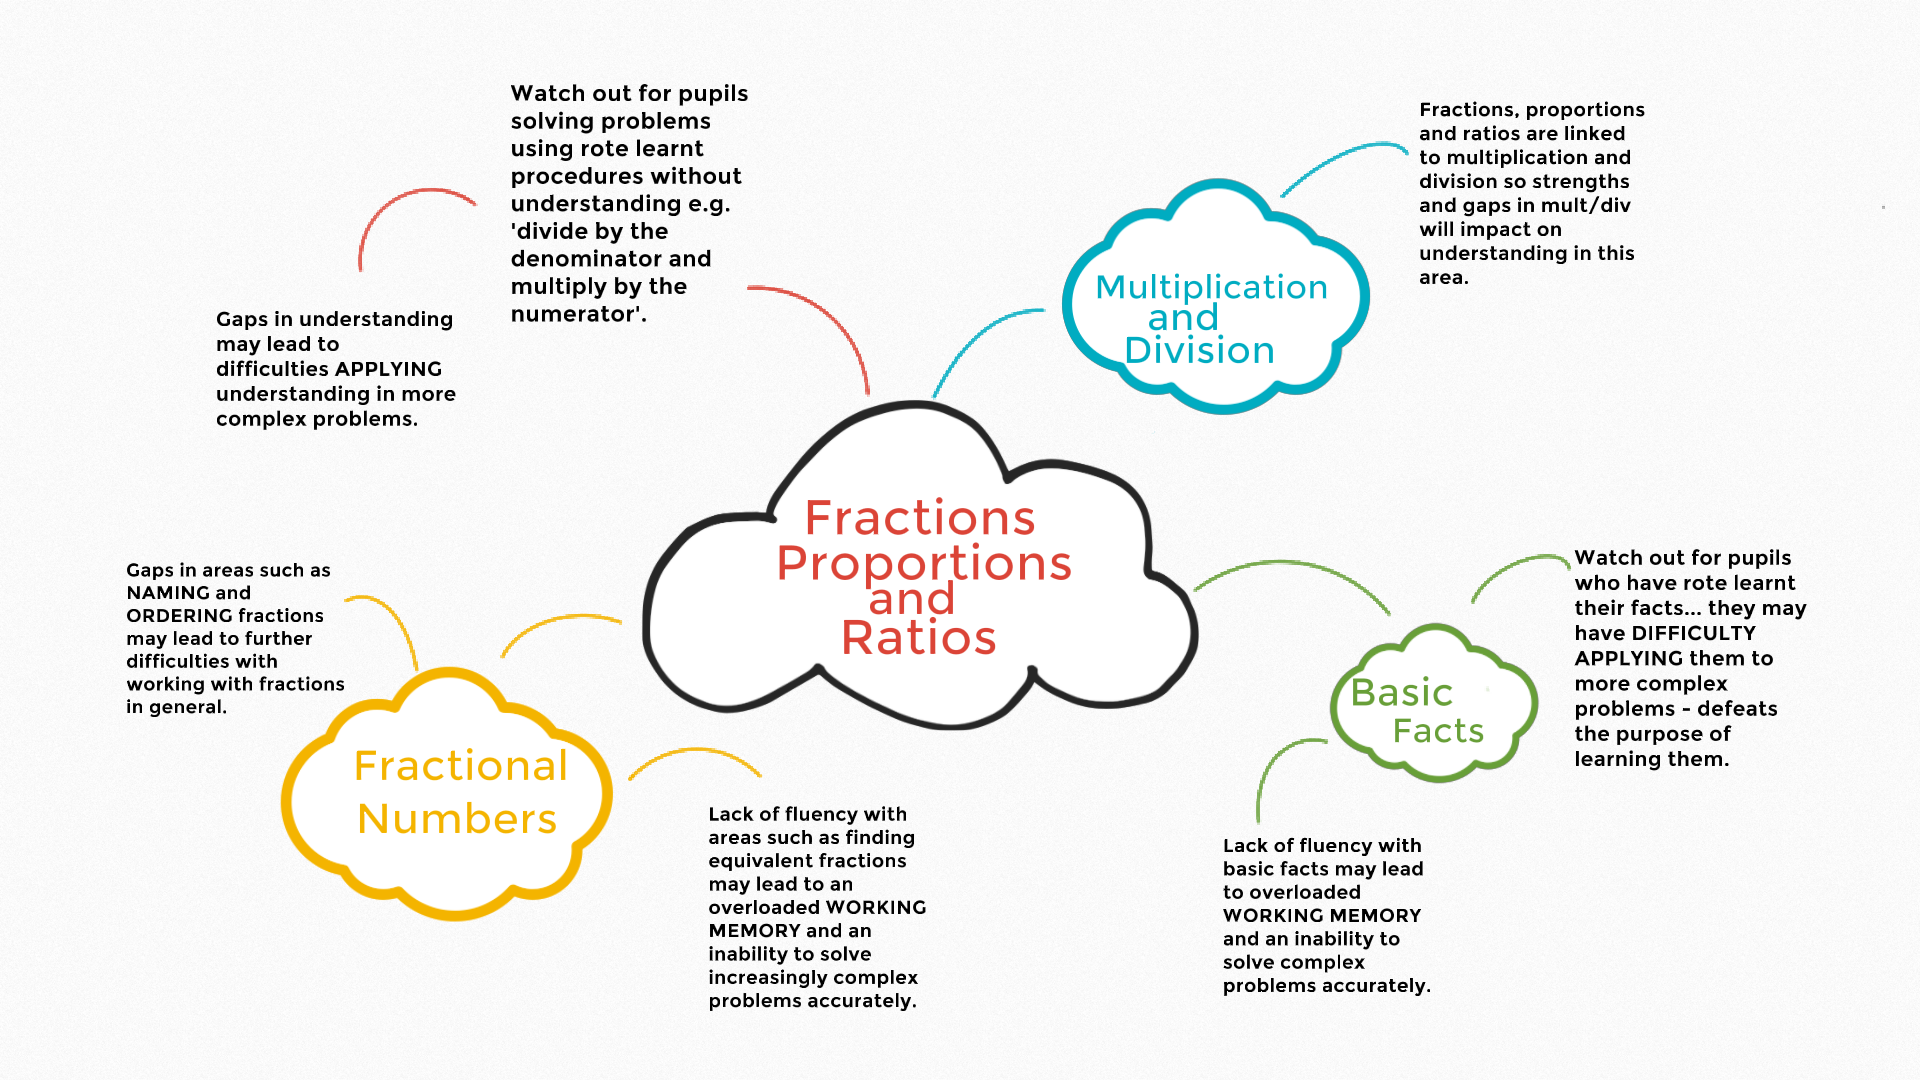 Spider diagram showing the connections between the fractions, proportions and ratios strategy assessment and the knowledge and strategy assessments that feed into it.